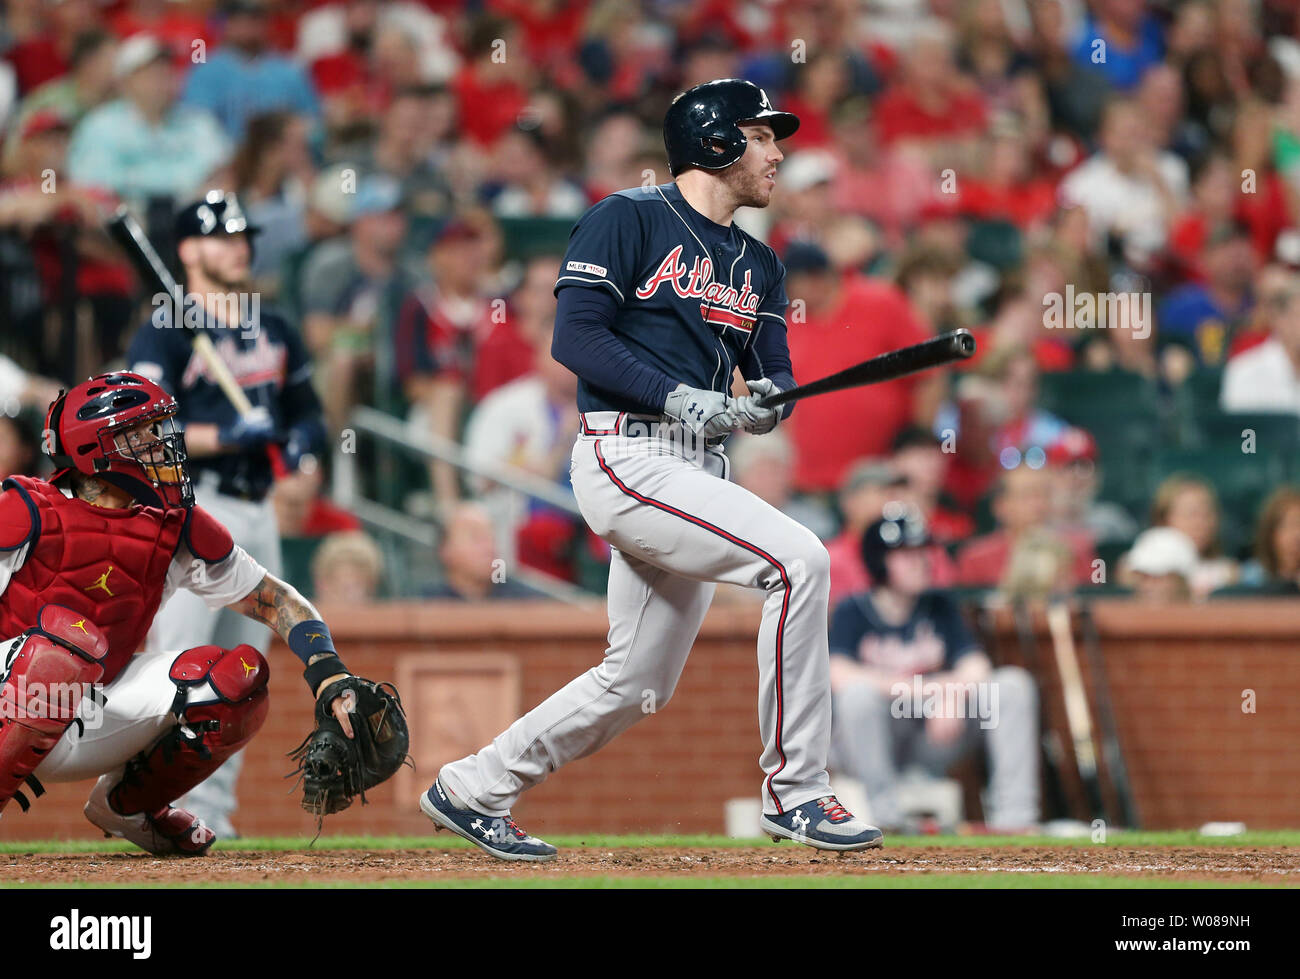 Atlanta Braves Freddie Freeman watches his solo home run leave the park in the sixth inning against the St. Louis Cardinals at Busch Stadium in St. Louis on May 24, 2019. Photo by Bill Greenblatt/UPI Stock Photo